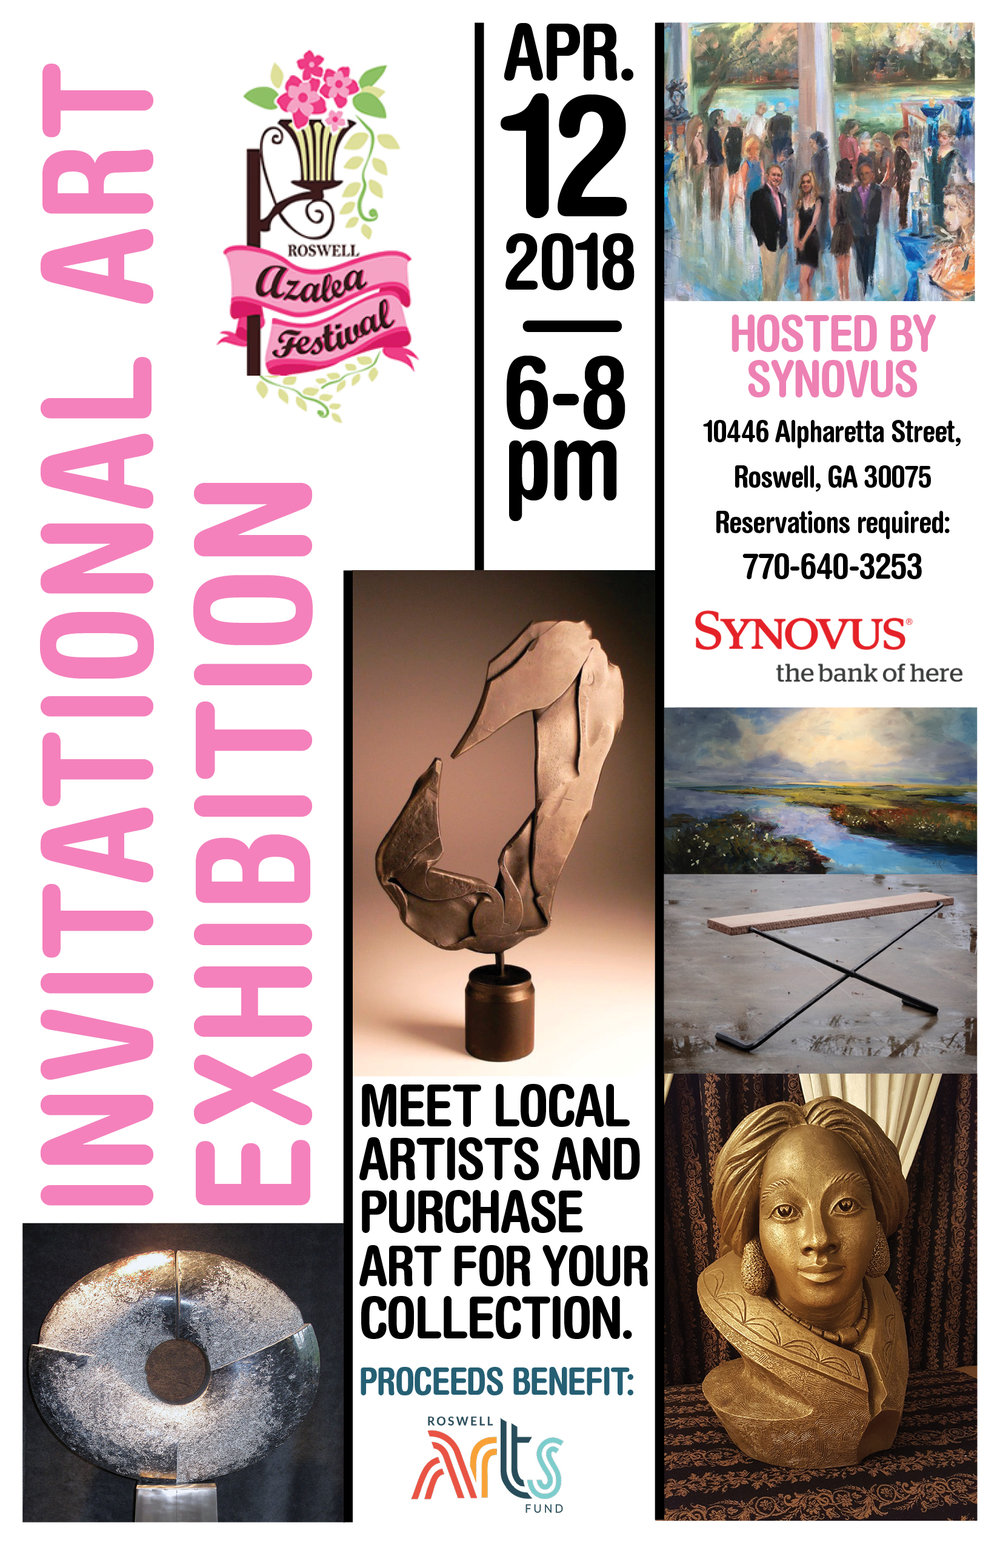 Invitational Art Exhibition - Roswell Azalea Festival